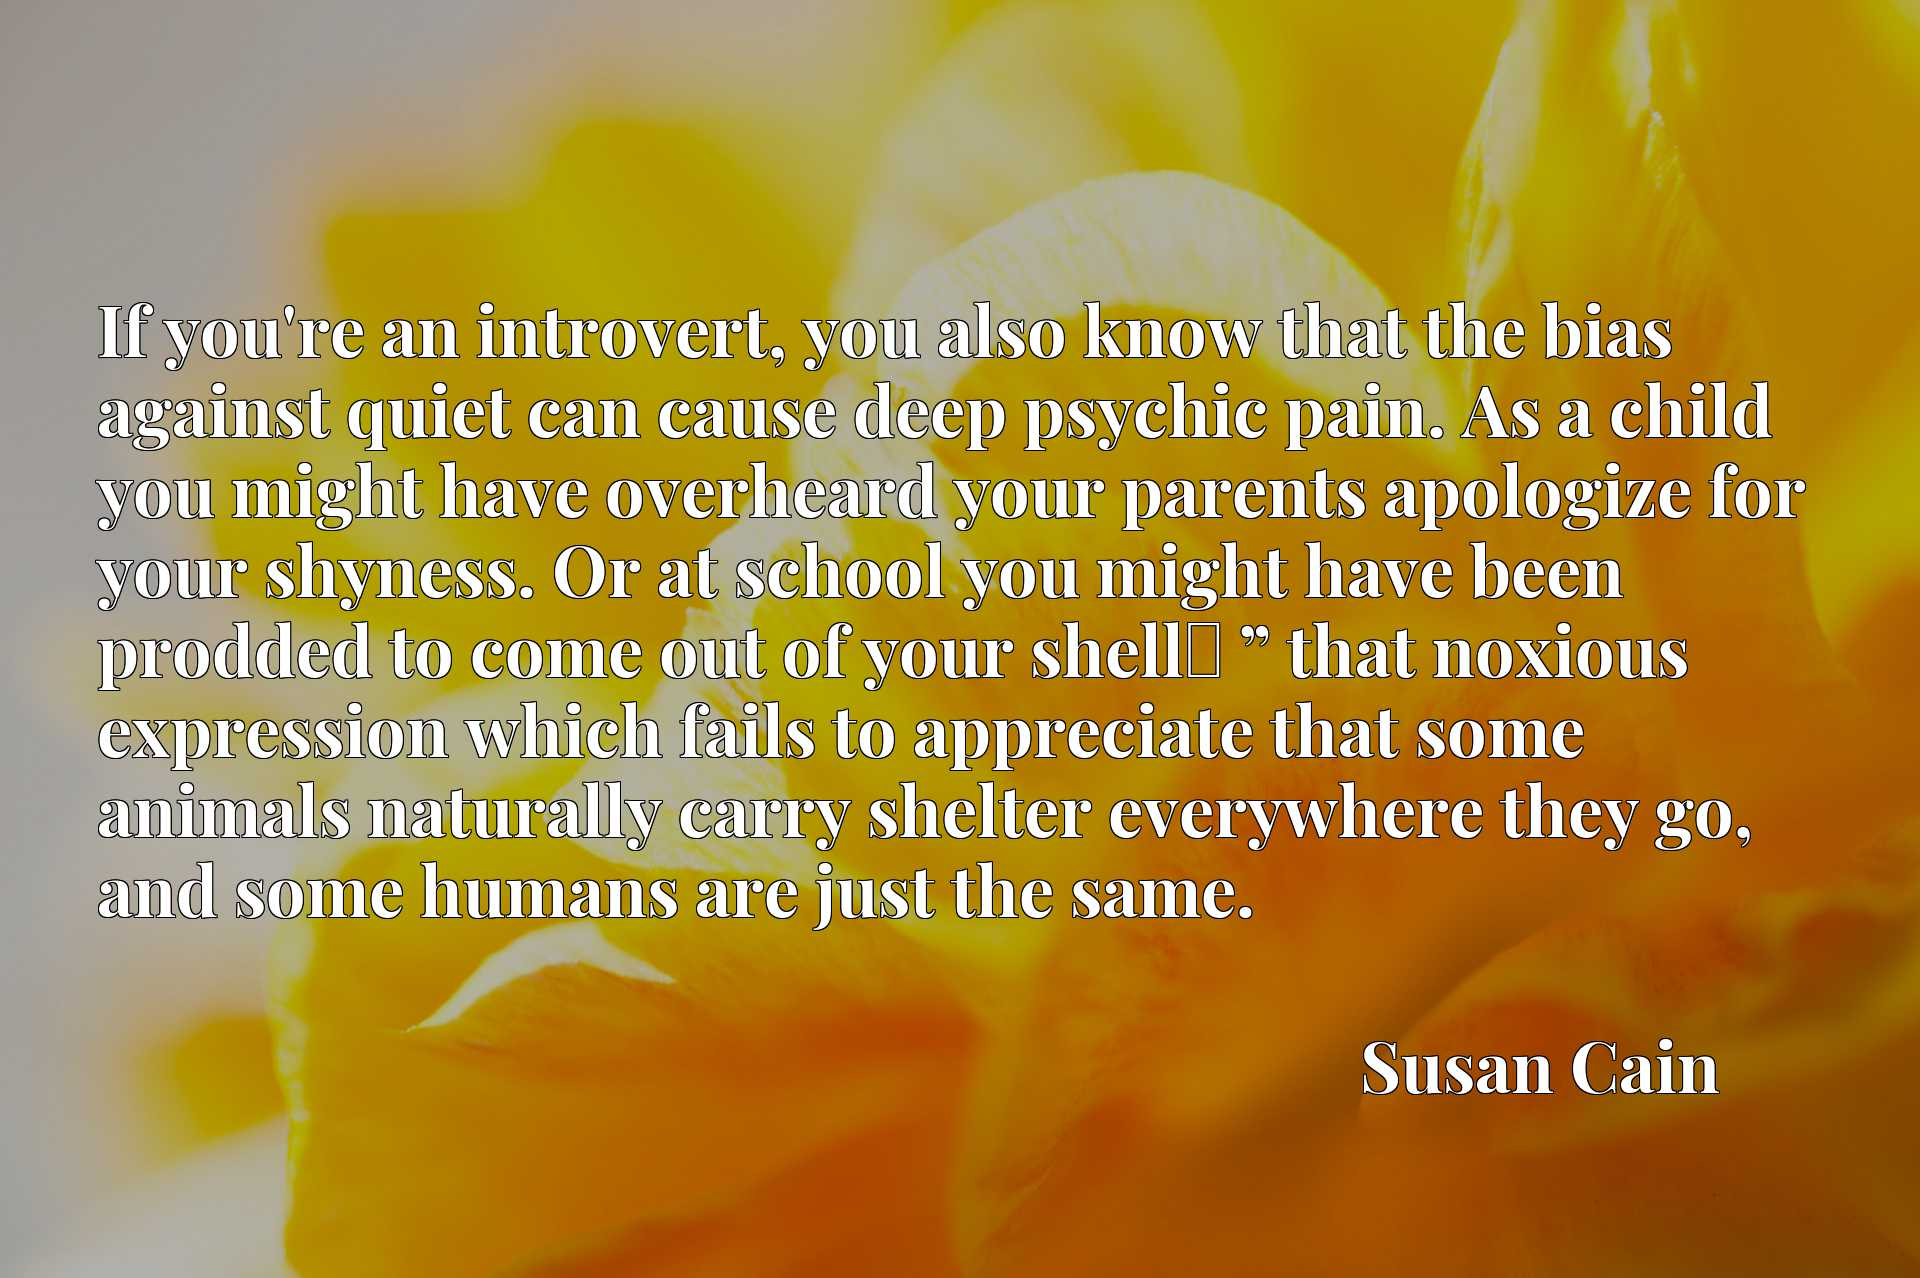 """If you're an introvert, you also know that the bias against quiet can cause deep psychic pain. As a child you might have overheard your parents apologize for your shyness. Or at school you might have been prodded to come out of your shellx9d """" that noxious expression which fails to appreciate that some animals naturally carry shelter everywhere they go, and some humans are just the same."""